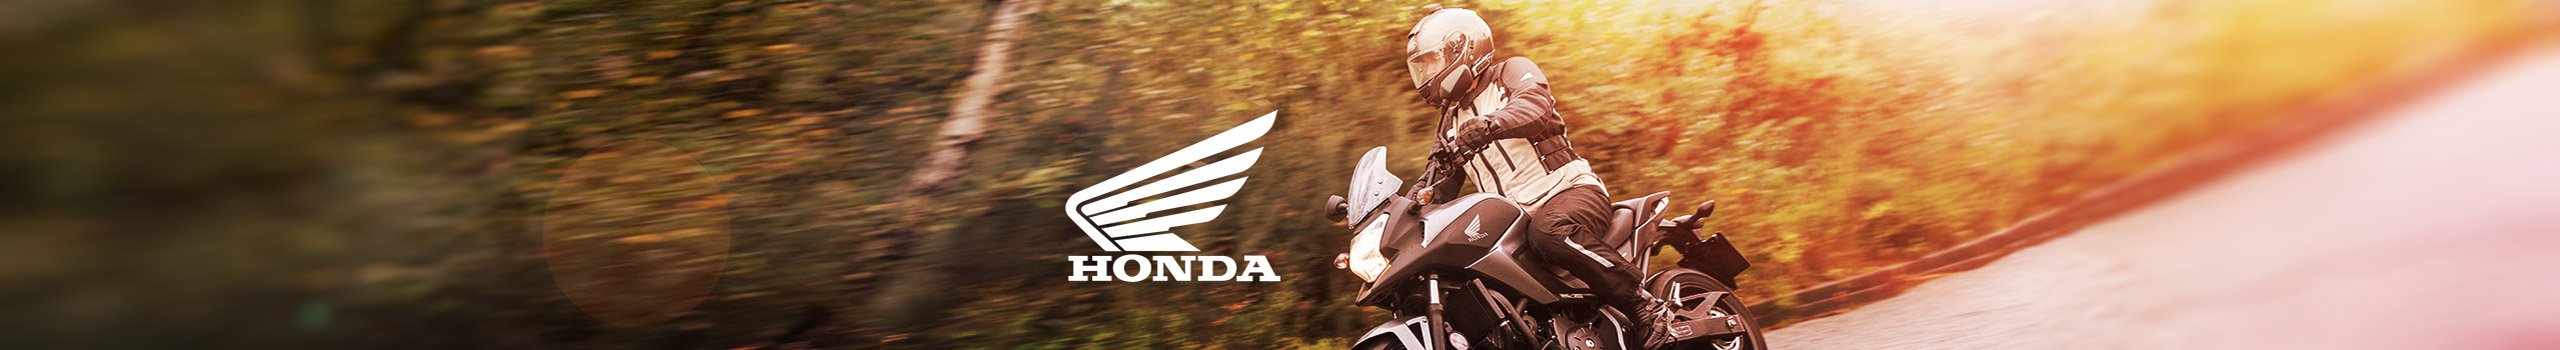 Honda PCX125 motorcycles for sale on Auto Trader Bikes